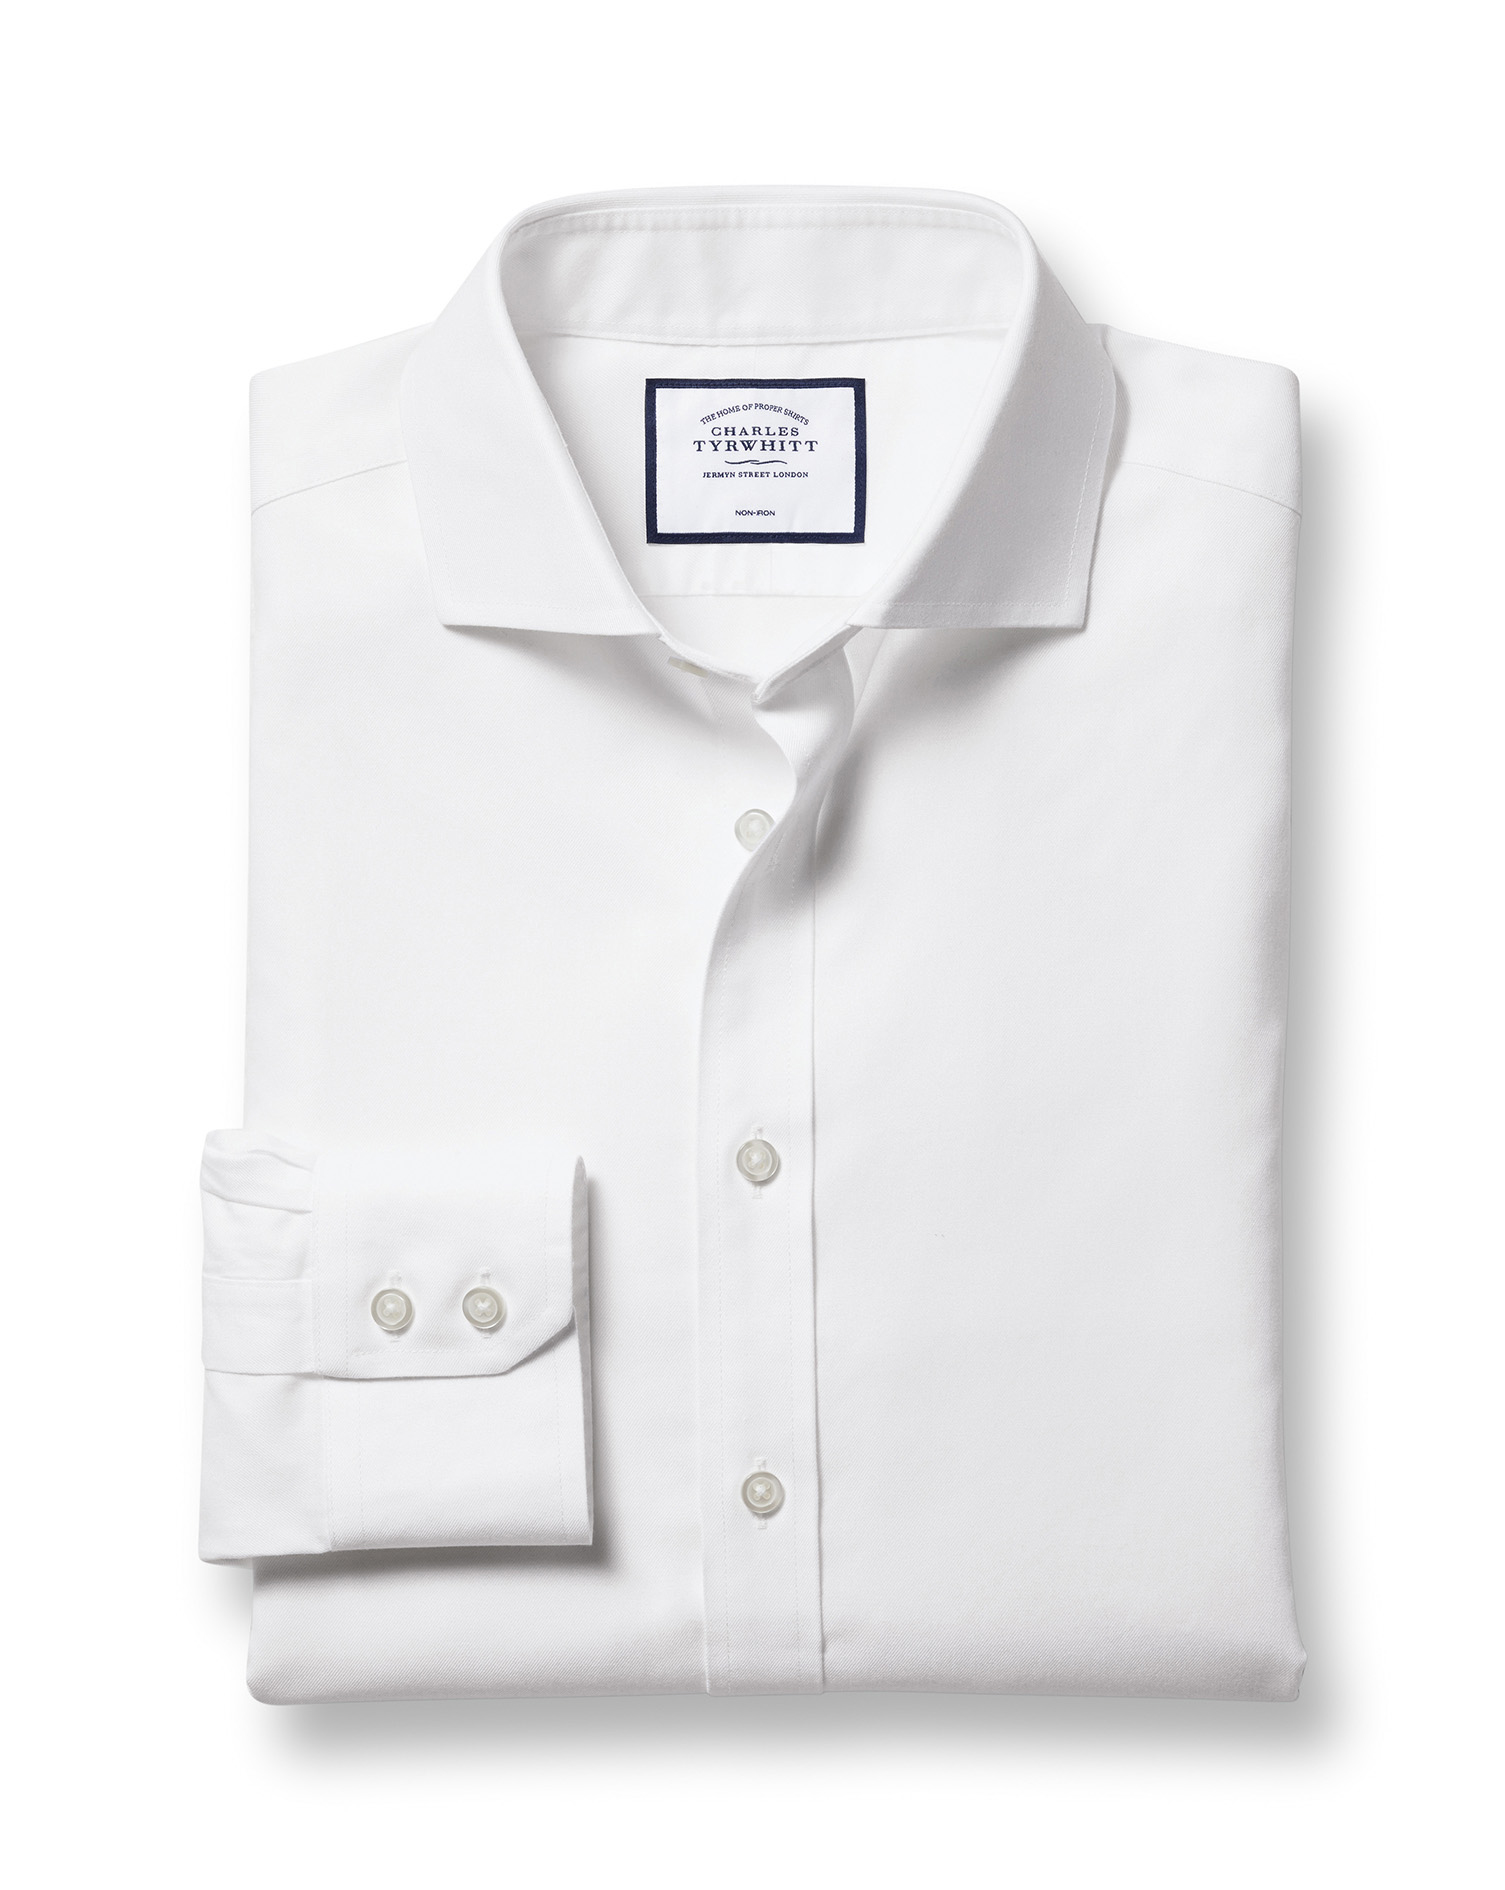 Classic Fit Cutaway Non-Iron Twill White Cotton Formal Shirt Single Cuff Size 19/35 by Charles Tyrwh